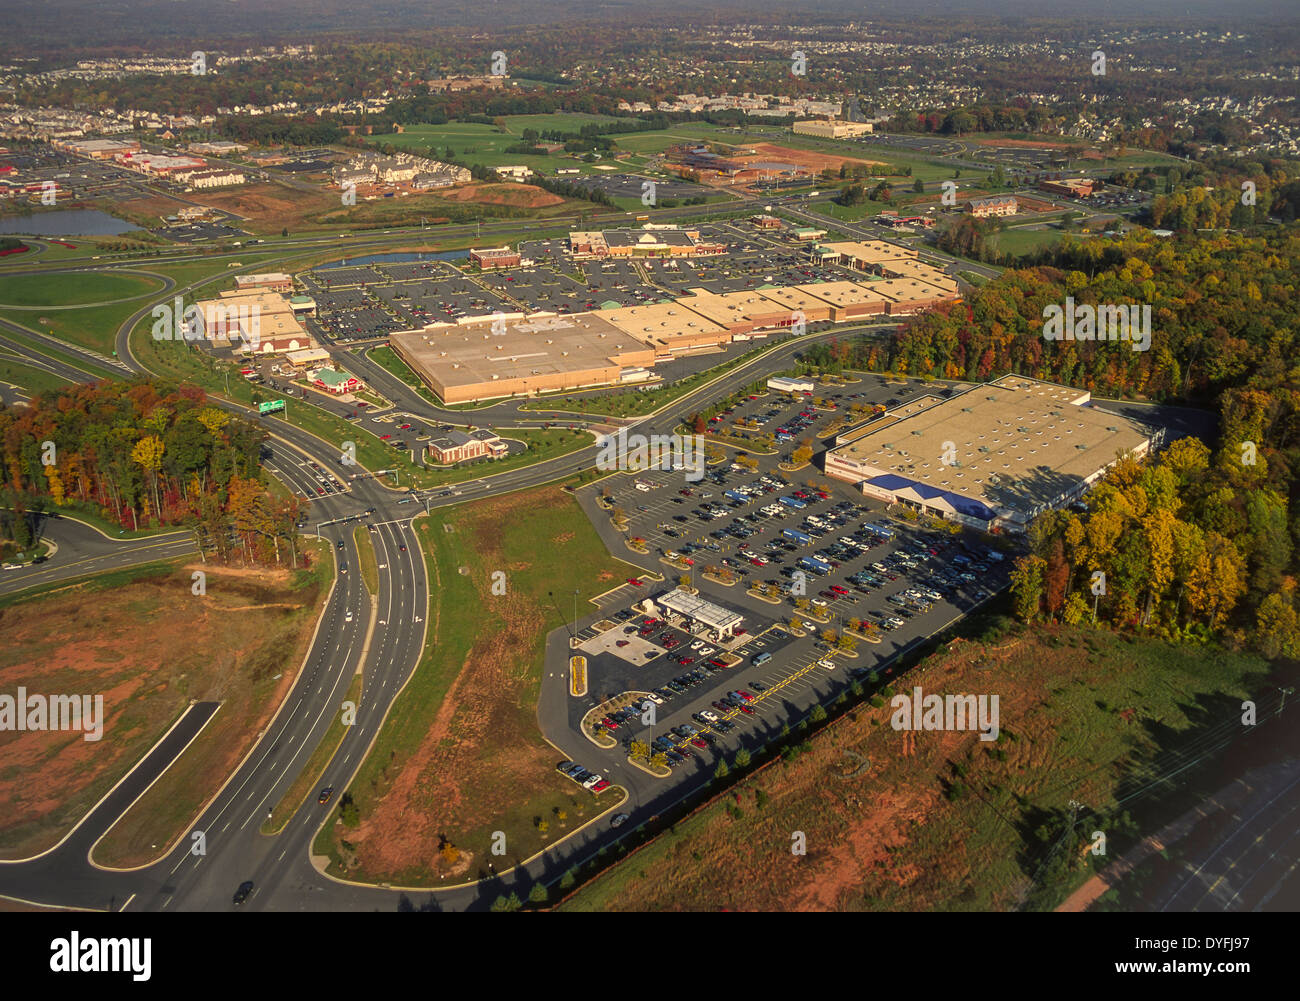 Costco Parking Lot Stock Photos & Costco Parking Lot Stock Images ...